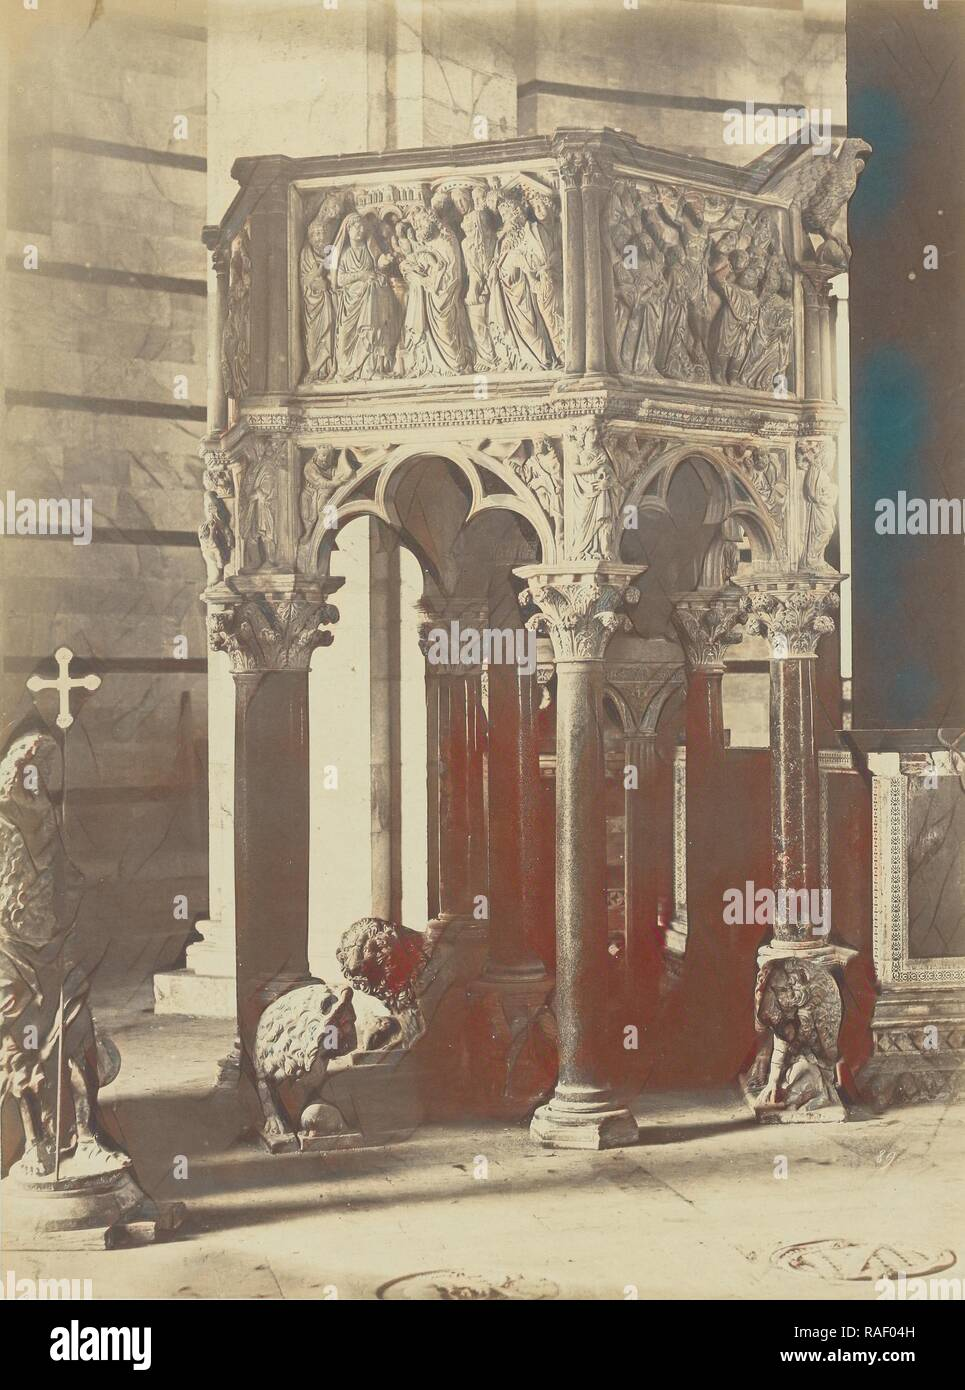 Altar canopy, Fratelli Alinari (Italian, founded 1852), Florence, Italy, 1850s, Albumen silver print. Reimagined - Stock Image